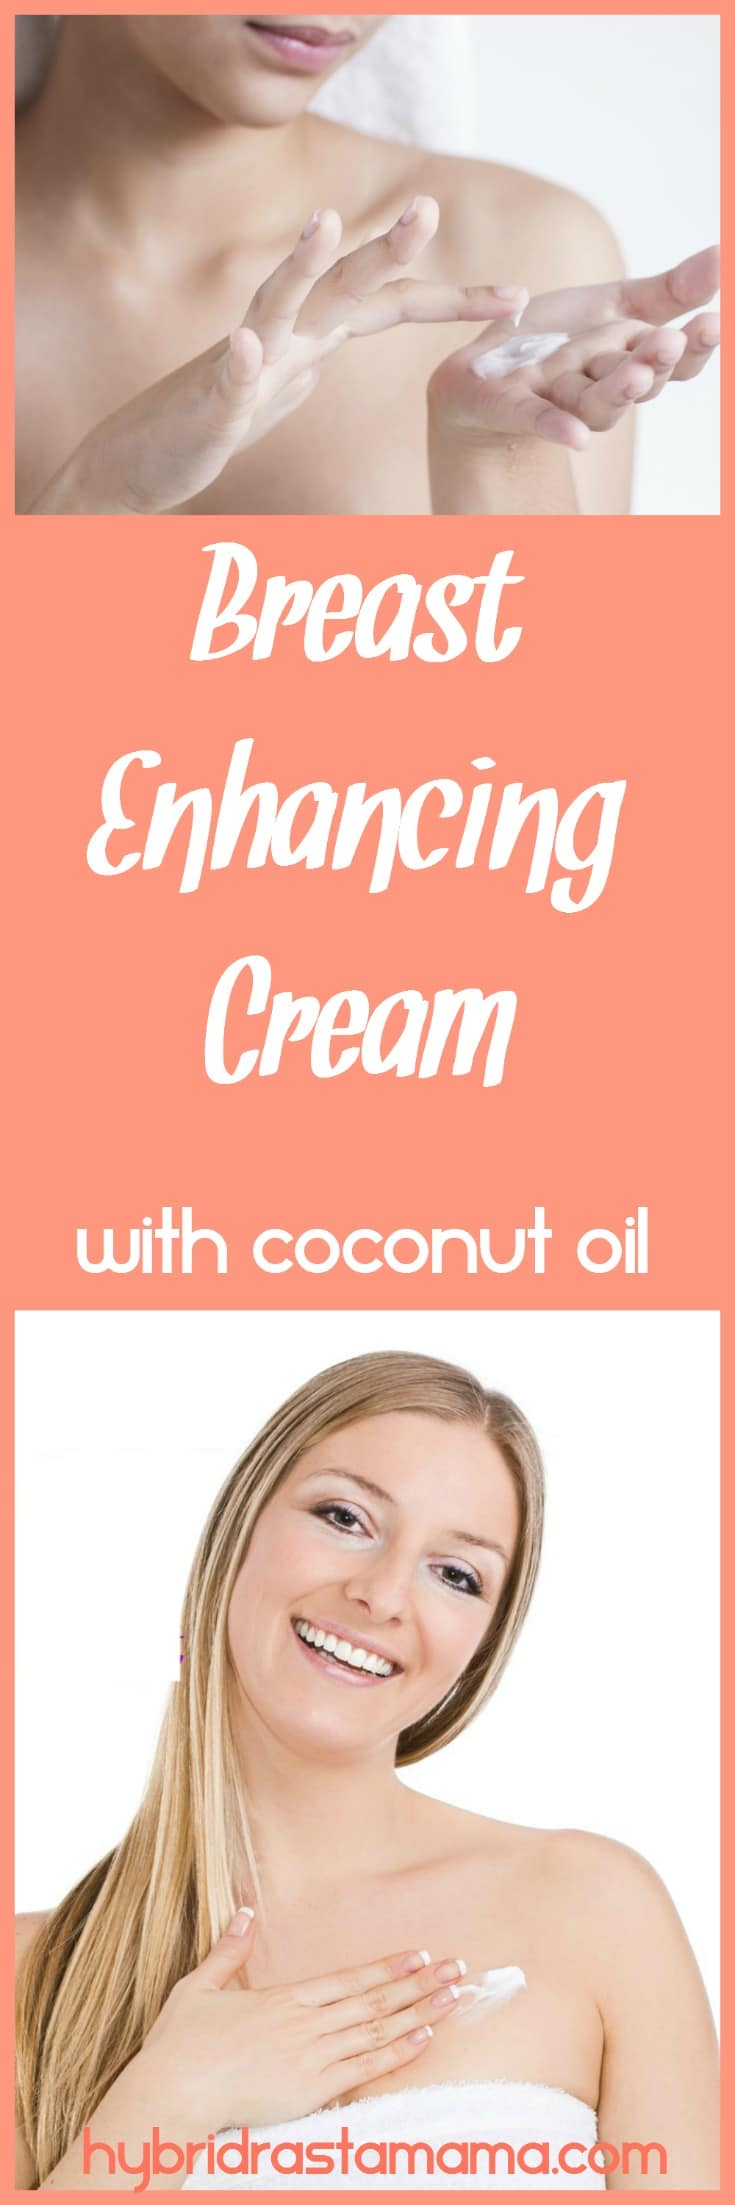 Saggy breasts? Tired breasts? Small breasts? Try these two coconut oil based recipes for breast enhancing cream. They will do wonders for the ladies! Brought to you by HybridRastaMama.com